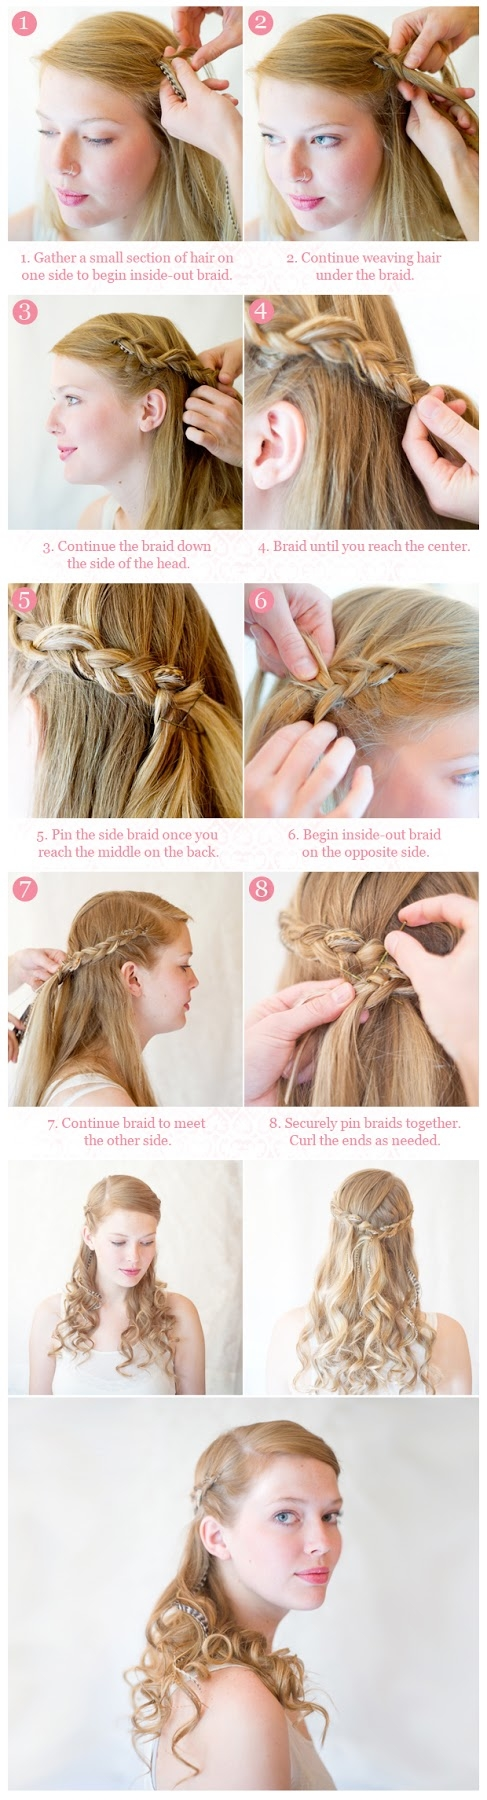 HD wallpapers diy braid out